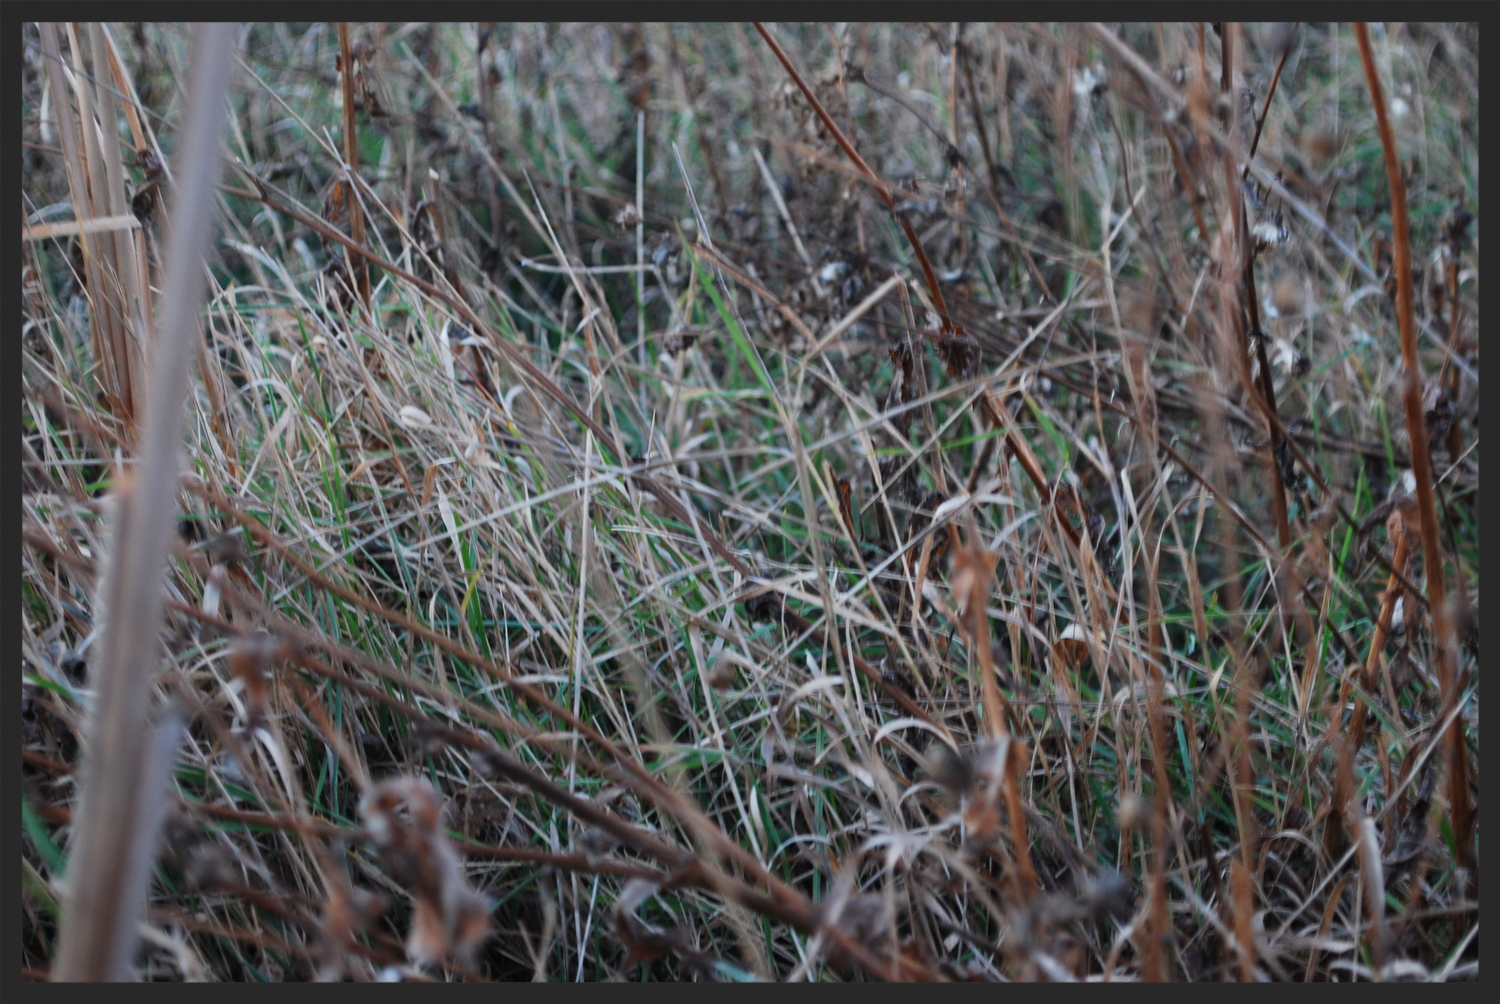 Native grasses are necessary to promote a healthy pheasant population